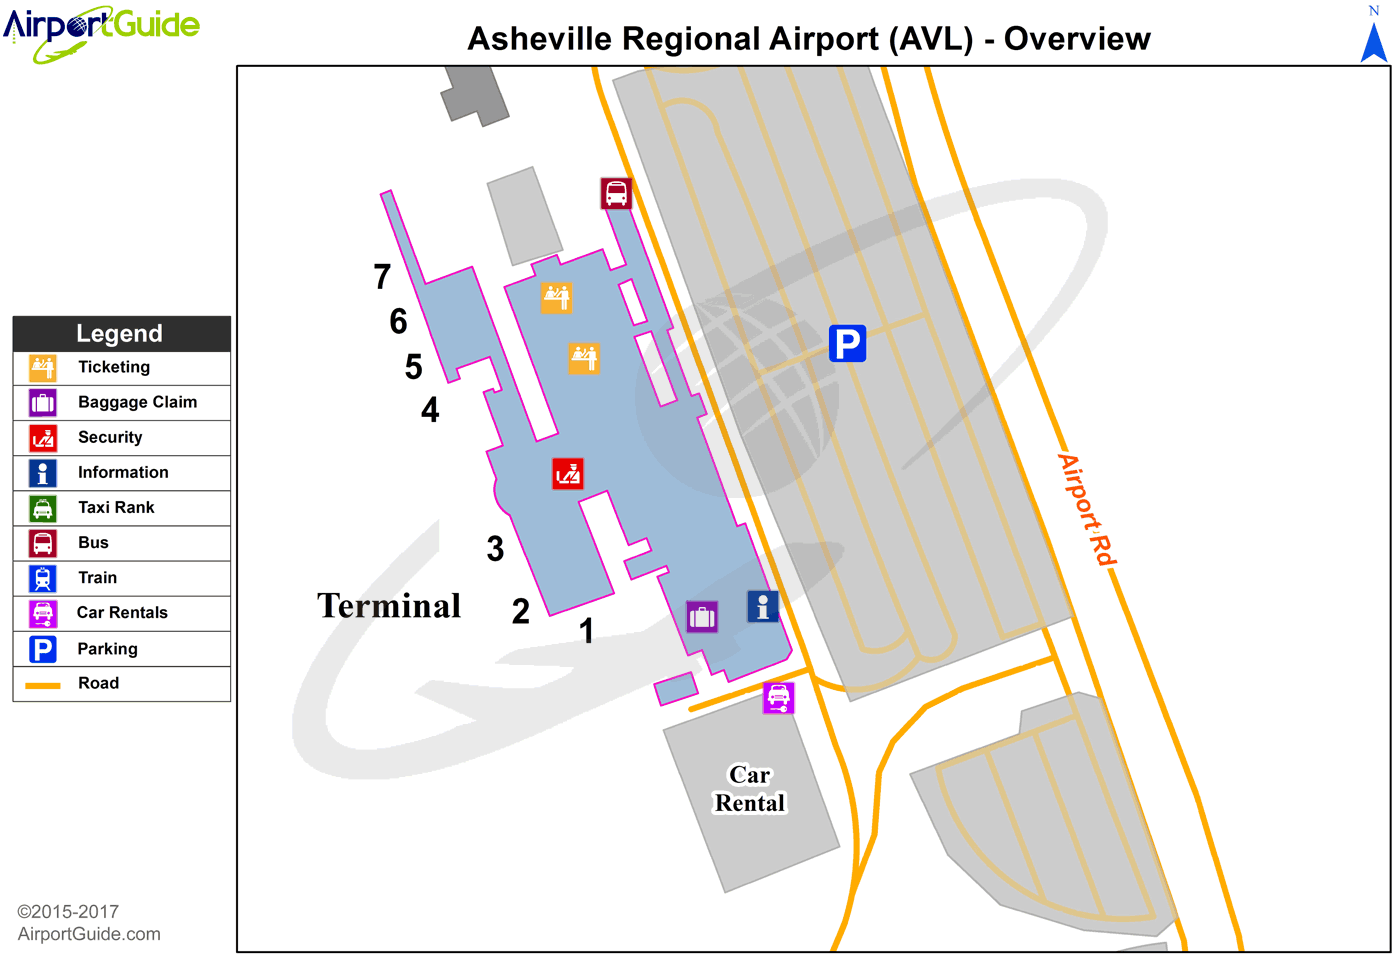 Asheville - Asheville Regional (AVL) Airport Terminal Maps ... on map of wingate university, map of lenoir city, map of matthews, map of buncombe county, map of brookings, map of beatrice, map of kenansville, map of otto, map of great smoky mountain railroad, map of chimney rock state park, map of whiteville, map of burgaw, map of easley, map of shaw university, map of north palm beach county, map of eatonton, map of cornelia, map of carlinville, map of kernersville, map of north carolina,